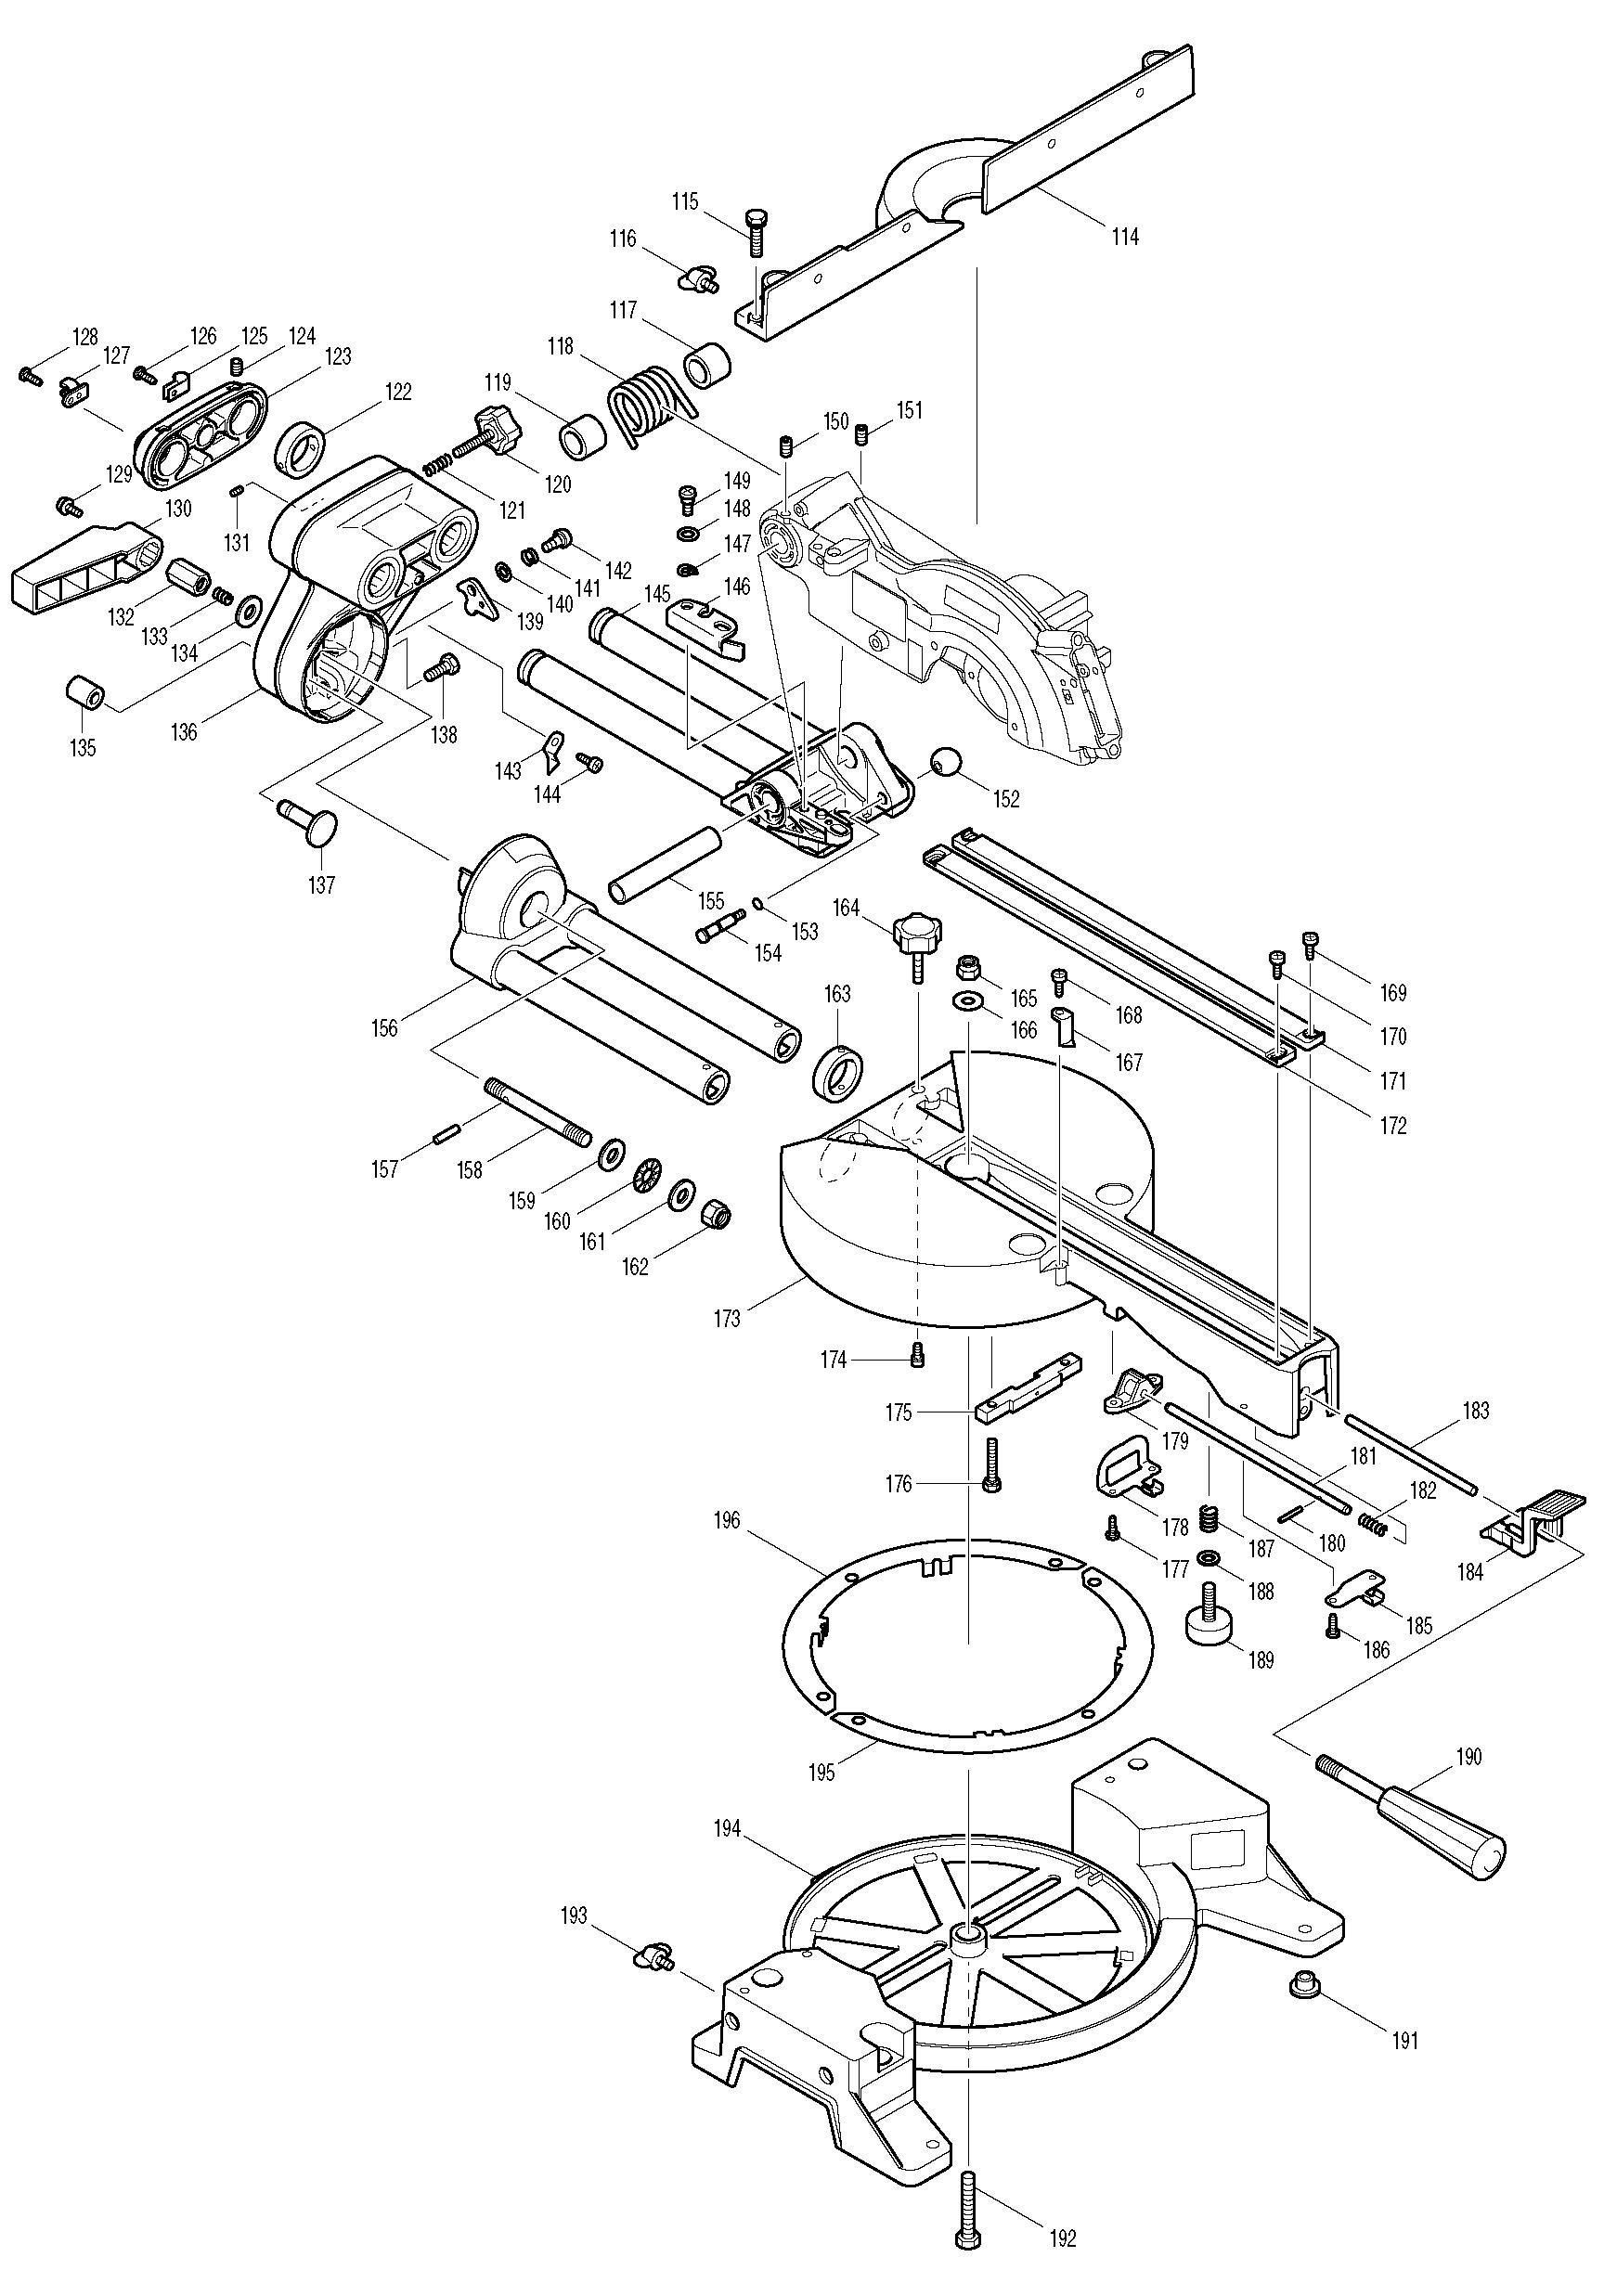 spares for makita ls0714fl saw spare ls0714fl from power